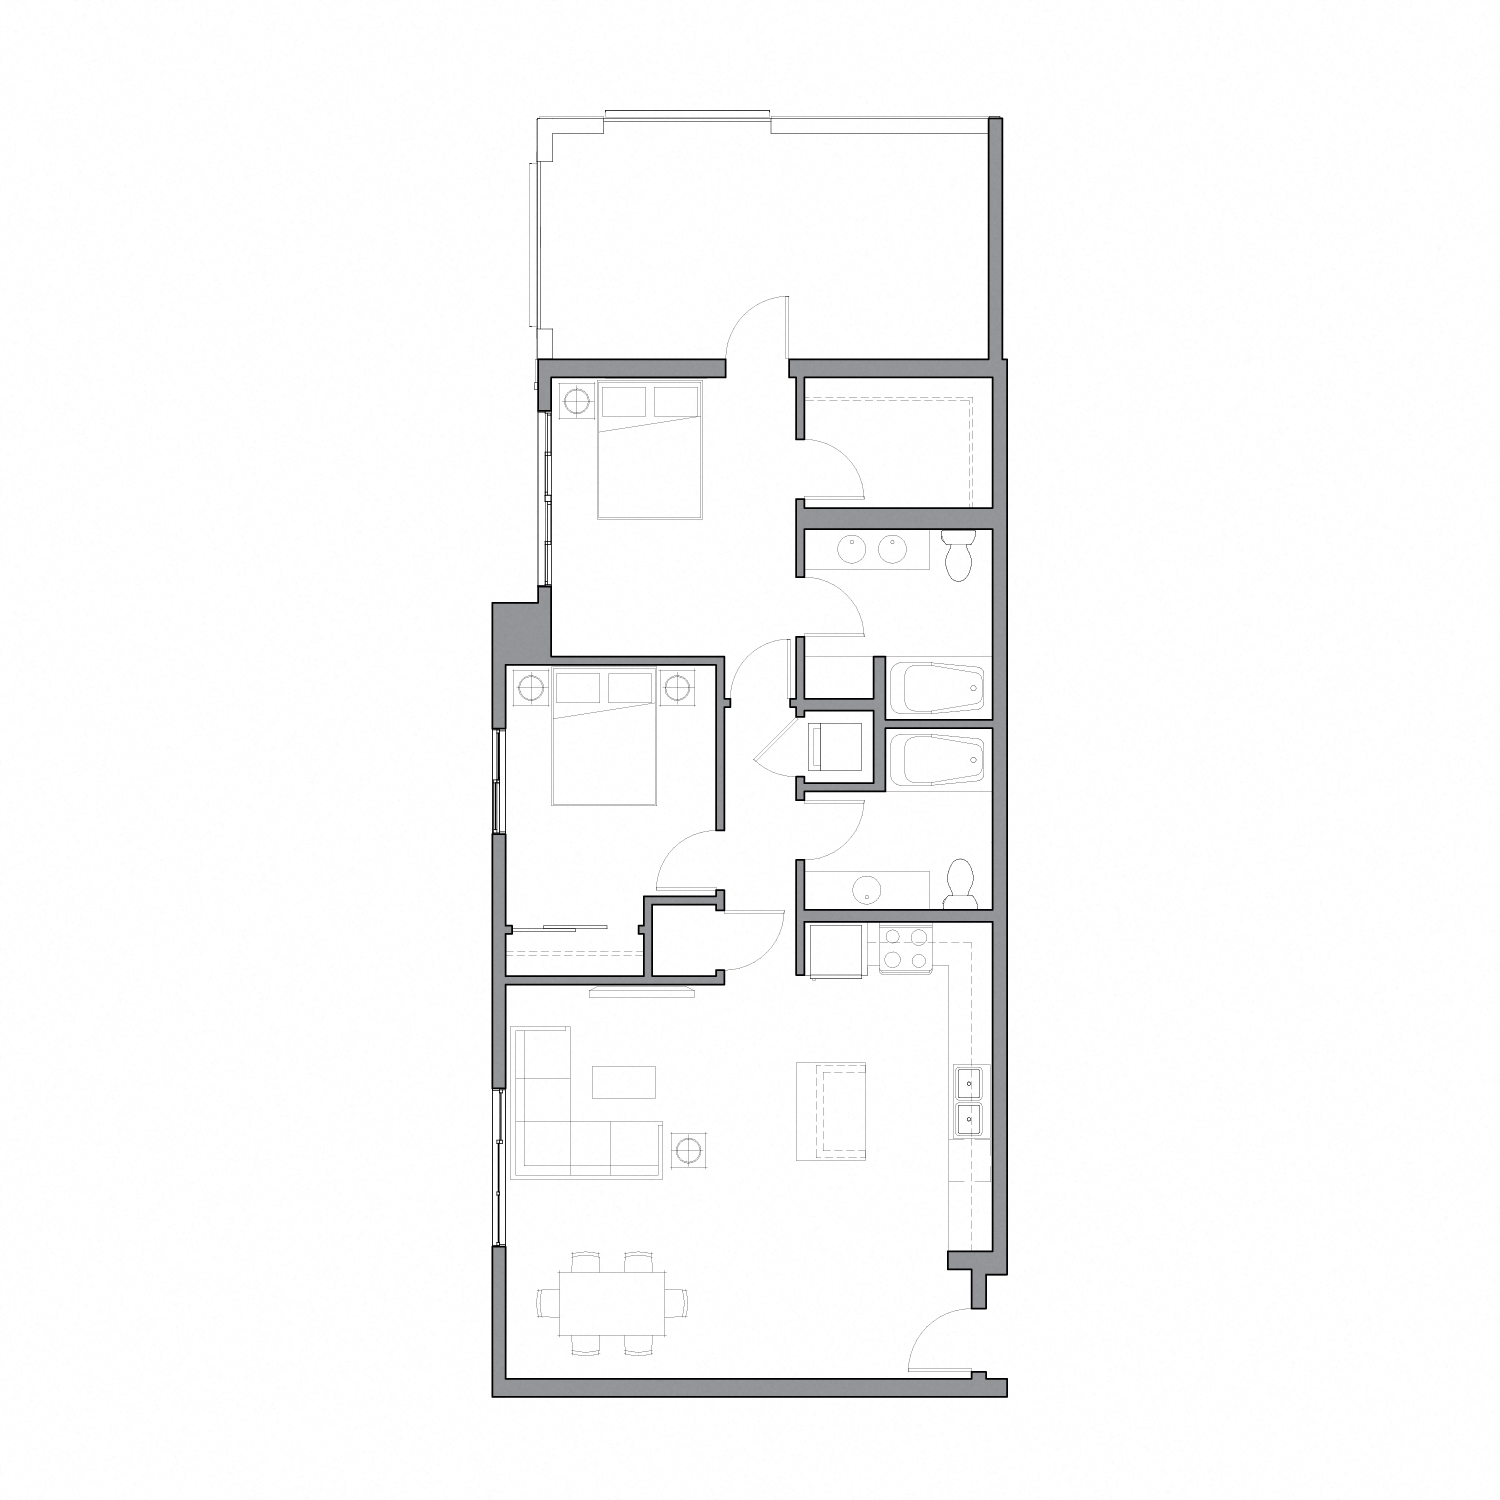 Floor plan diagram with two bedrooms, two bathrooms, an open kitchen dining and living space, and a large patio